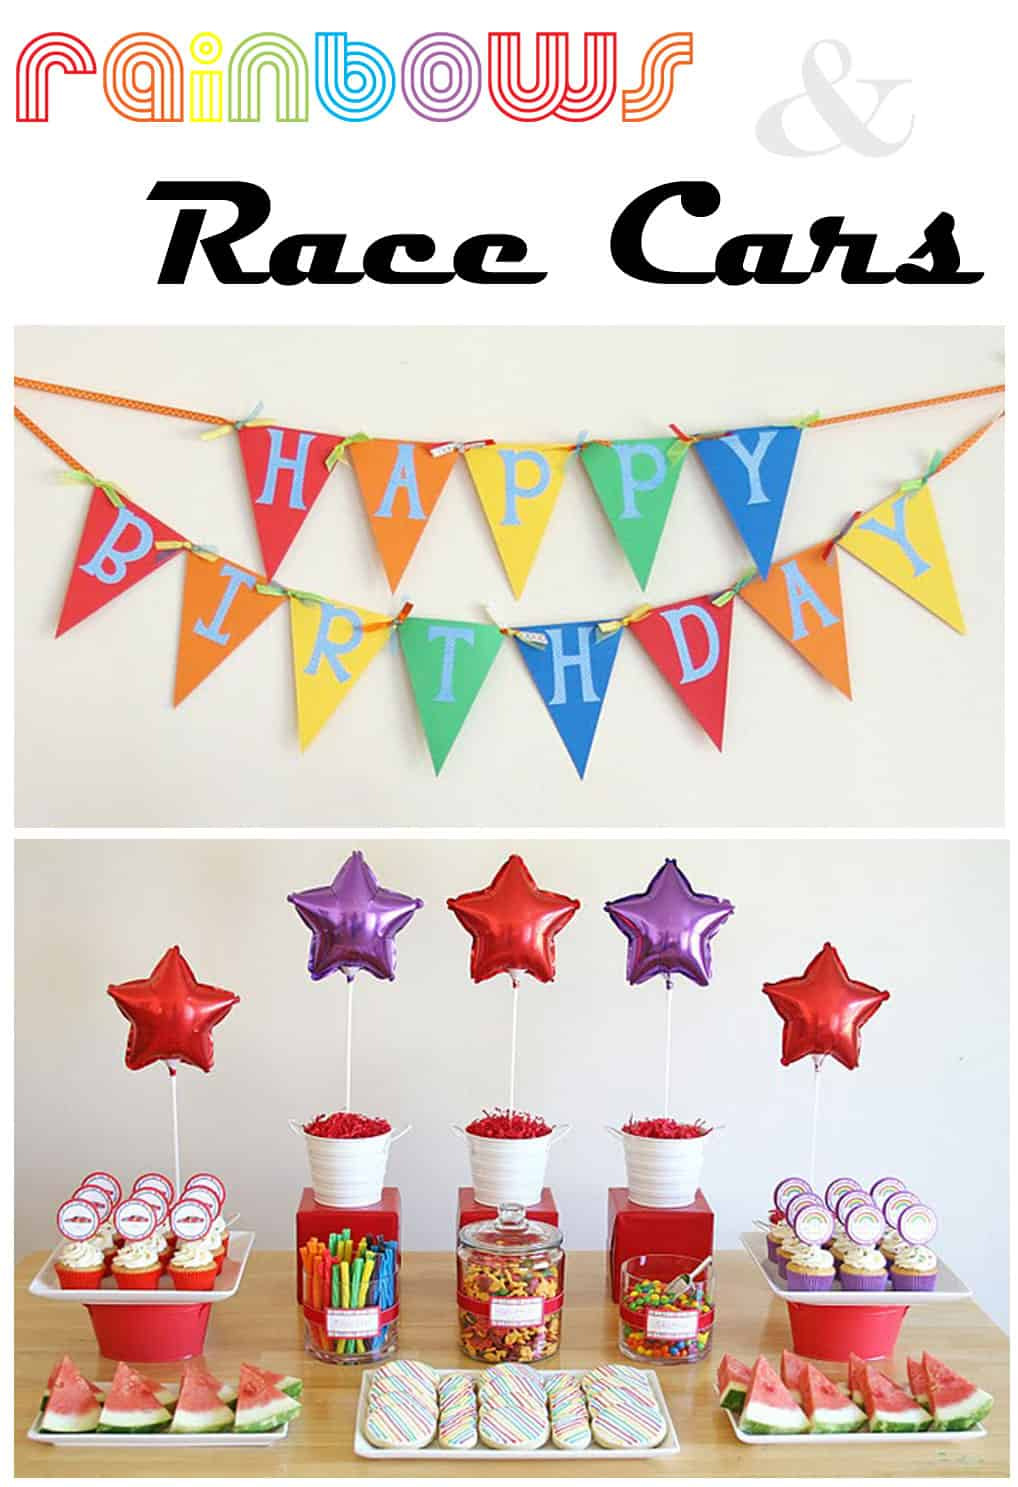 Party Themes Rainbows And Race Cars Thoughtfully Simple